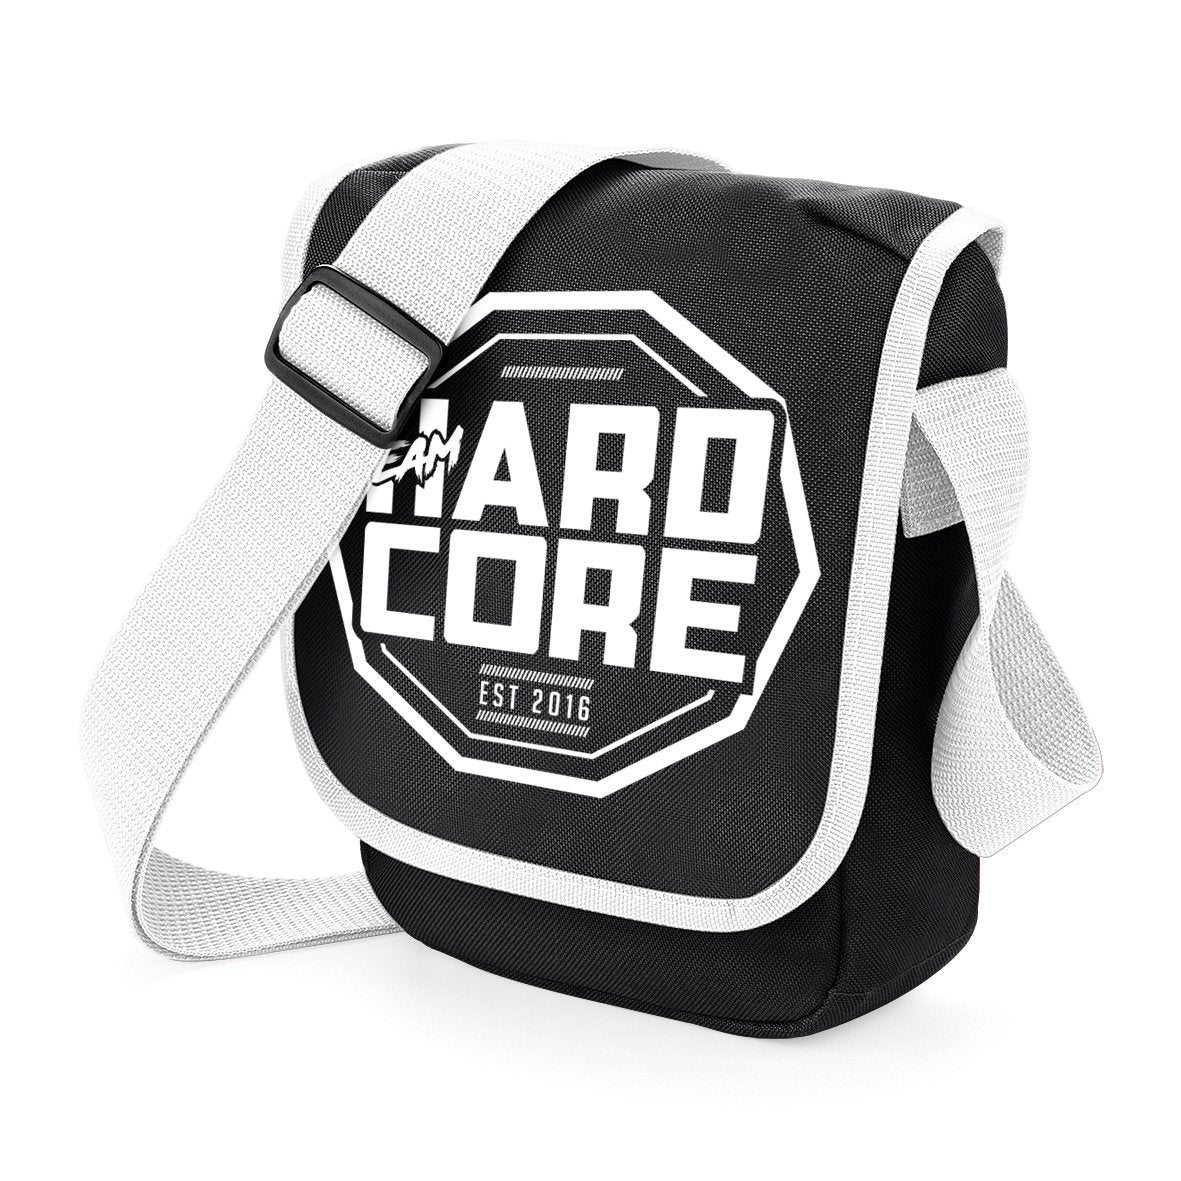 Team Hardcore Headphone Bag Bag Team Hardcore Black / White